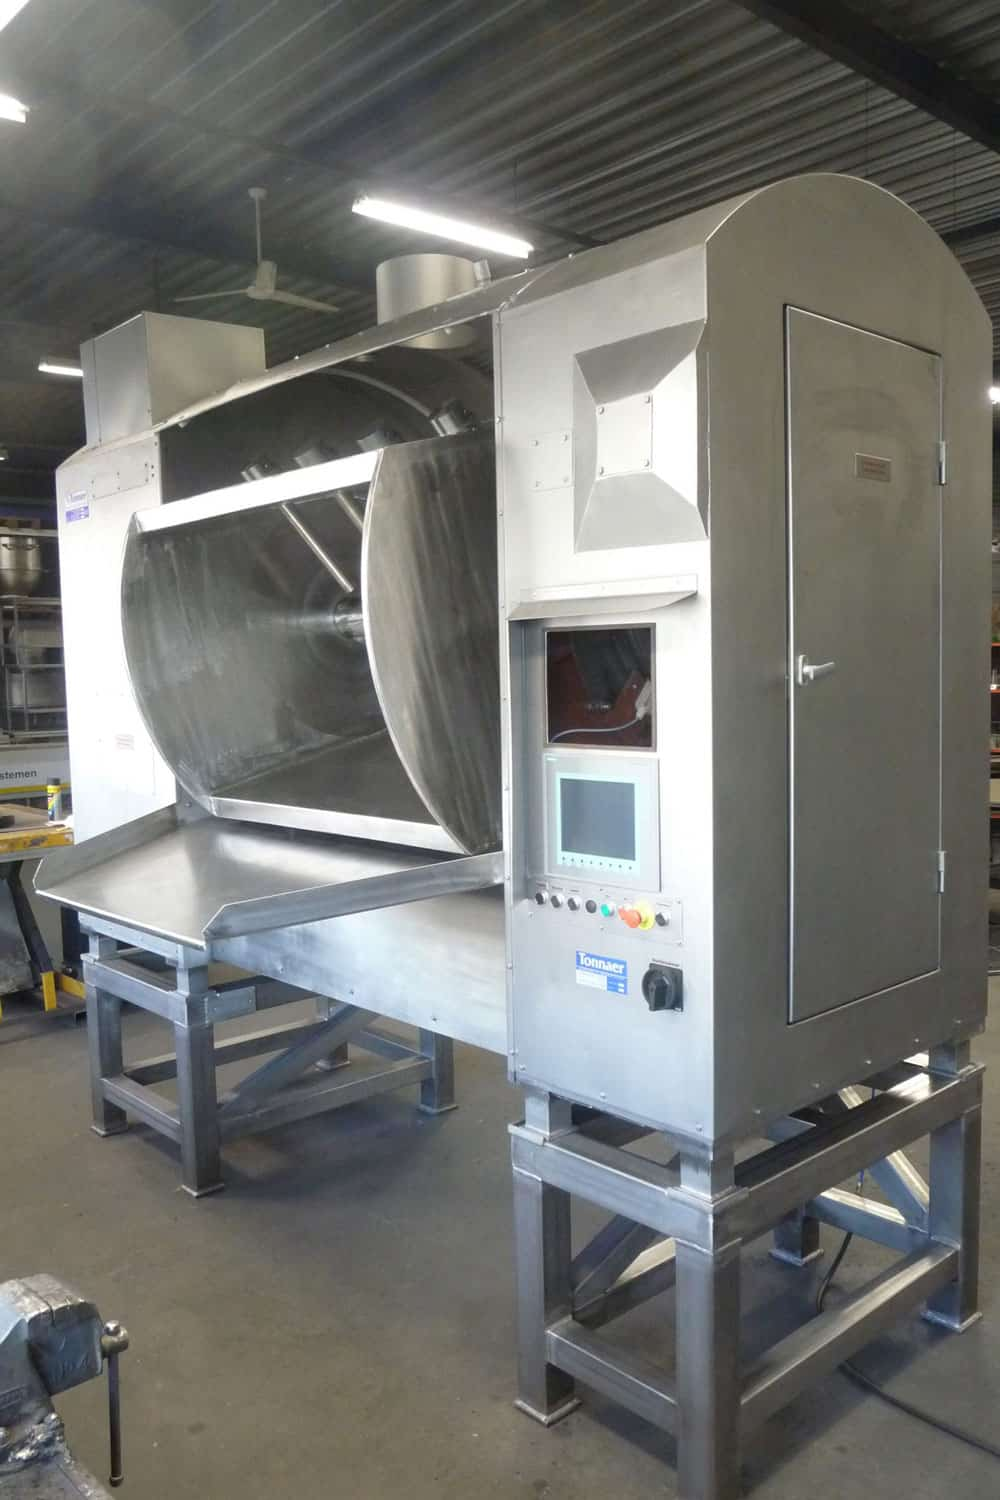 Paddle mixer1000 litres - Tonnaer Mixing Systems